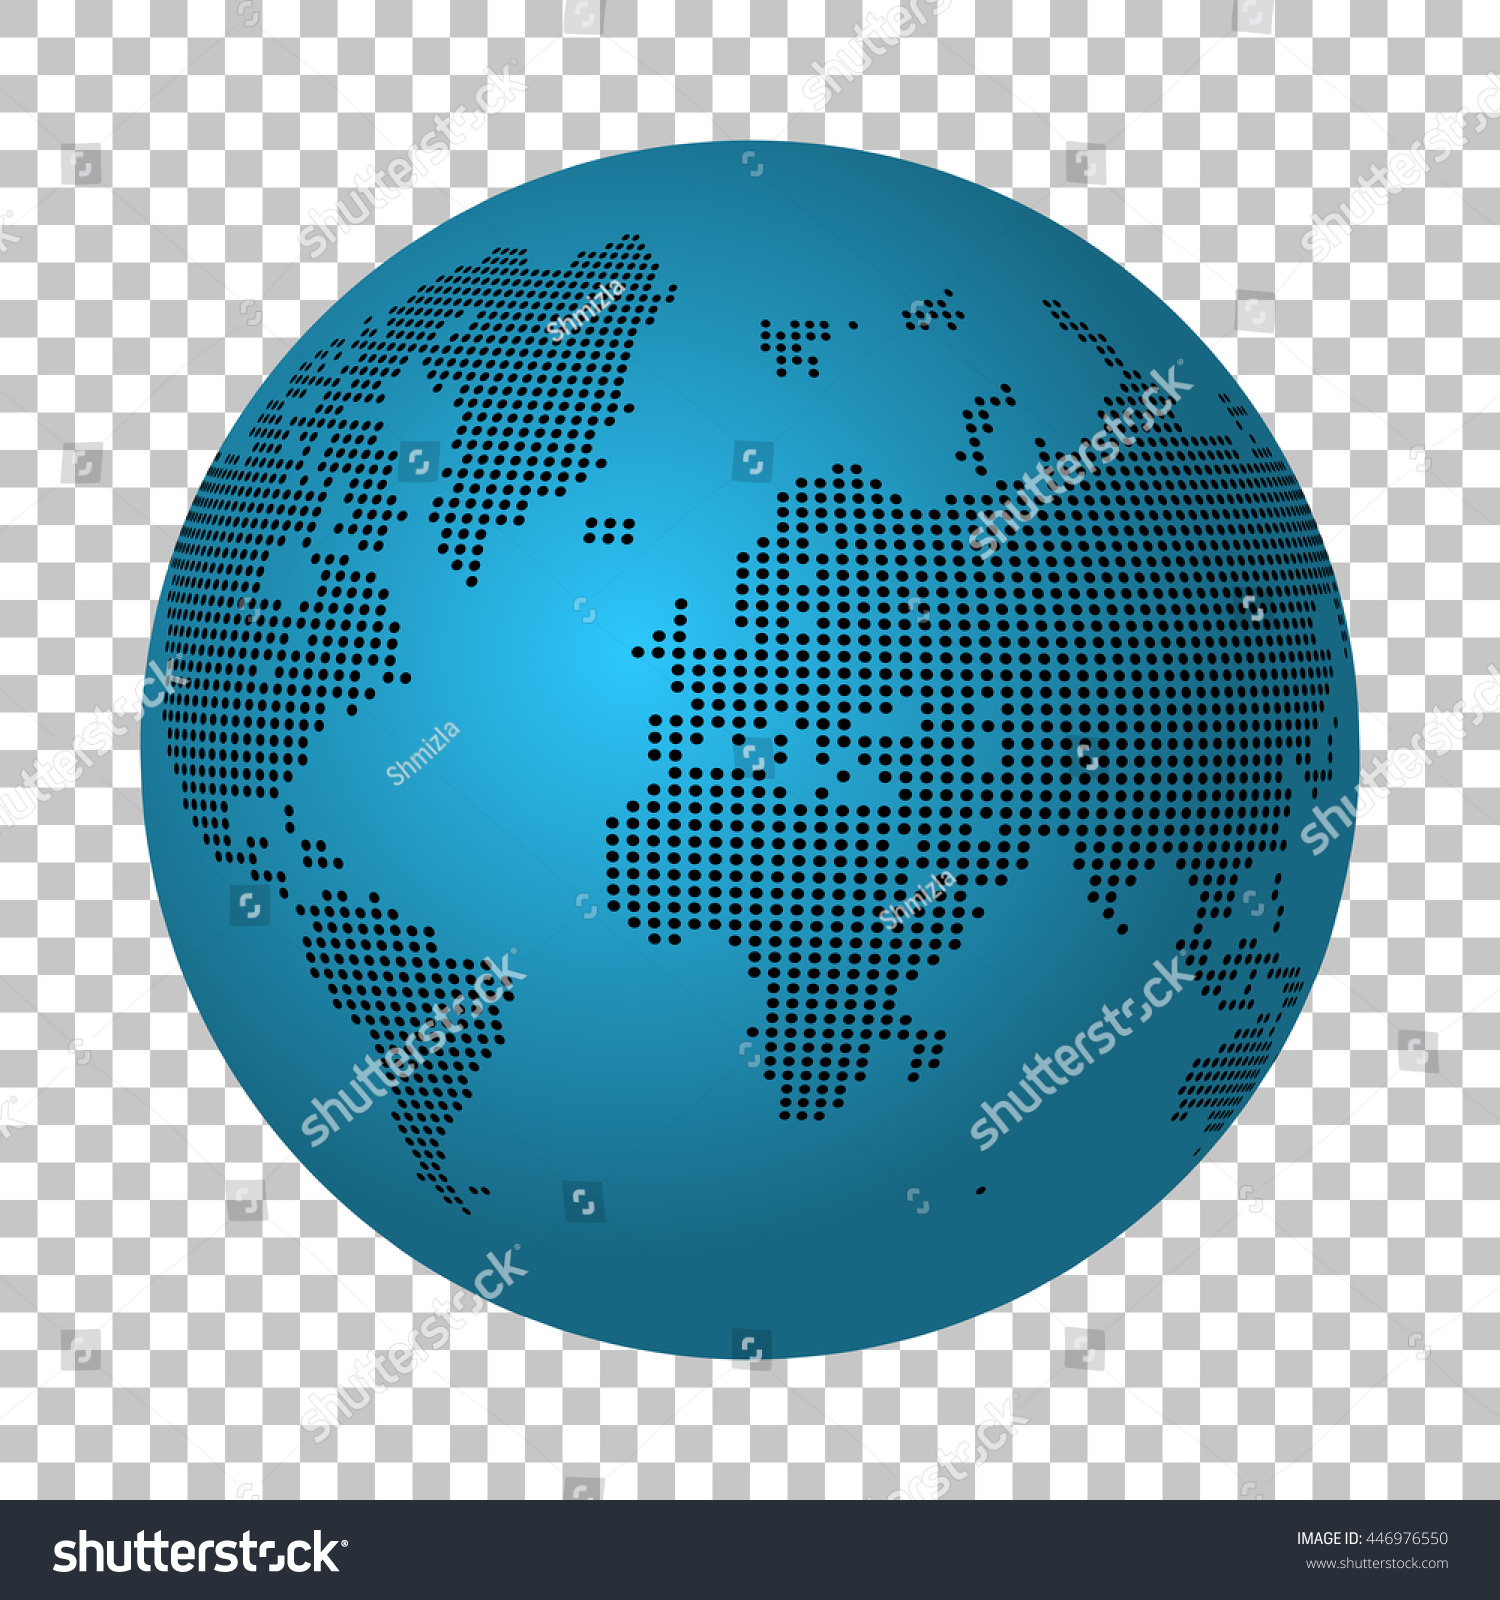 Abstract world map made dots earth stock vector 446976550 shutterstock gumiabroncs Choice Image